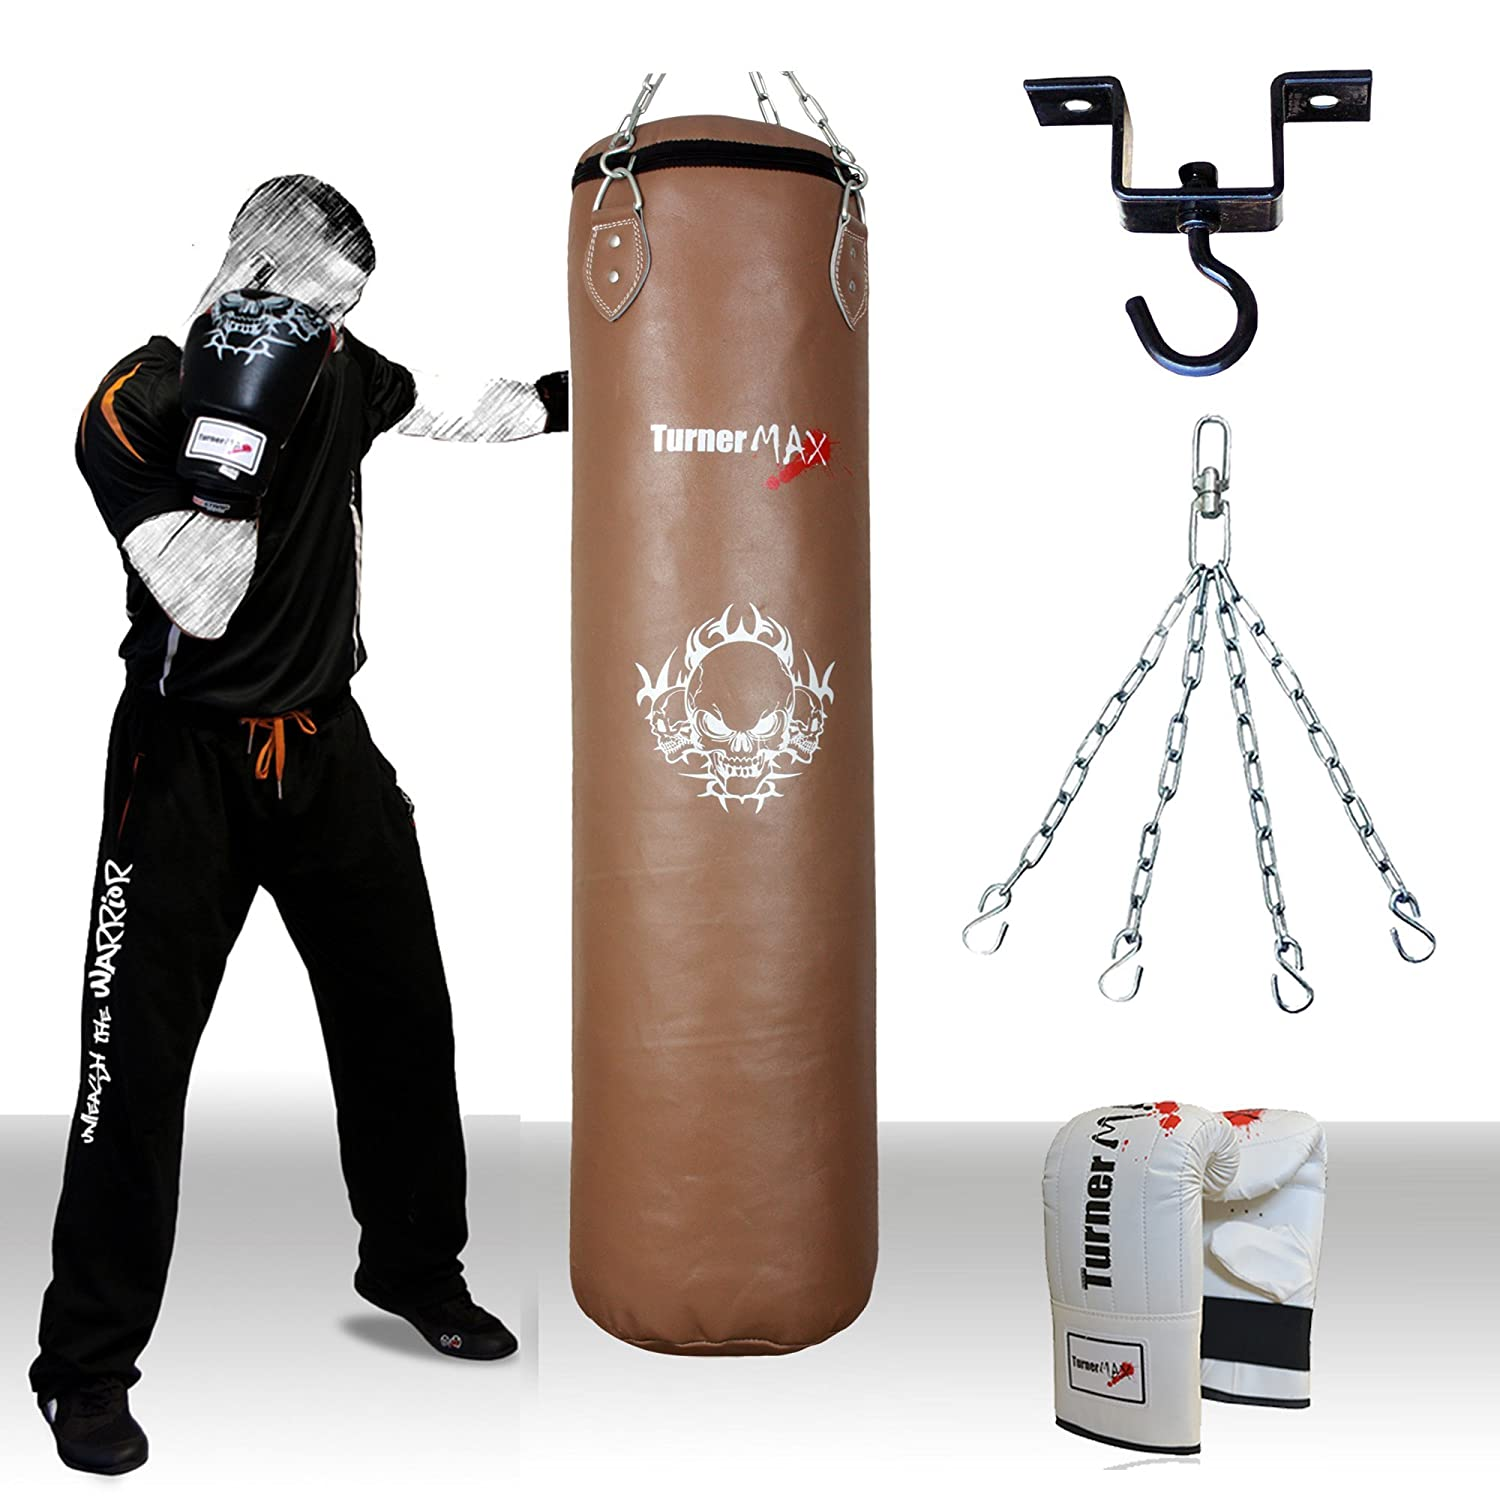 TurnerMAX Genuine Cowhide Leather Punch Bag Boxing Set Bag Gloves and Heavy Duty Metal Punchbag Ceiling hook bracket with Free Swivel Chain Natural Turner Sports